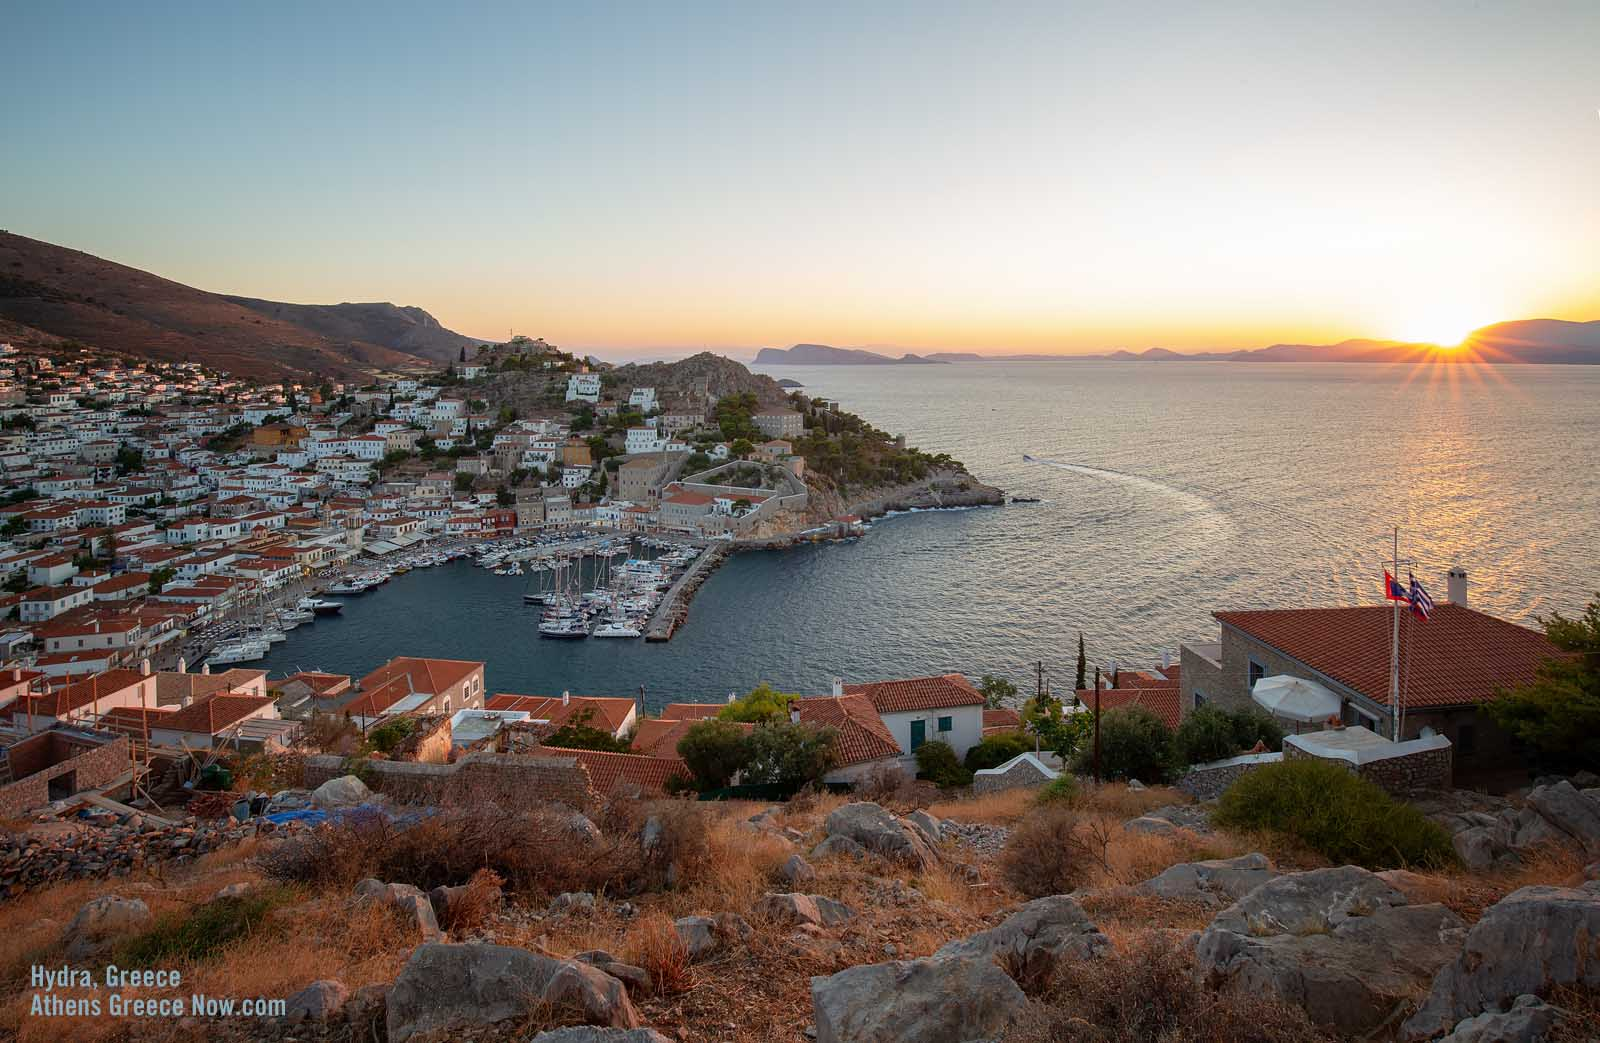 Enlarged image - Hydra Island Greece